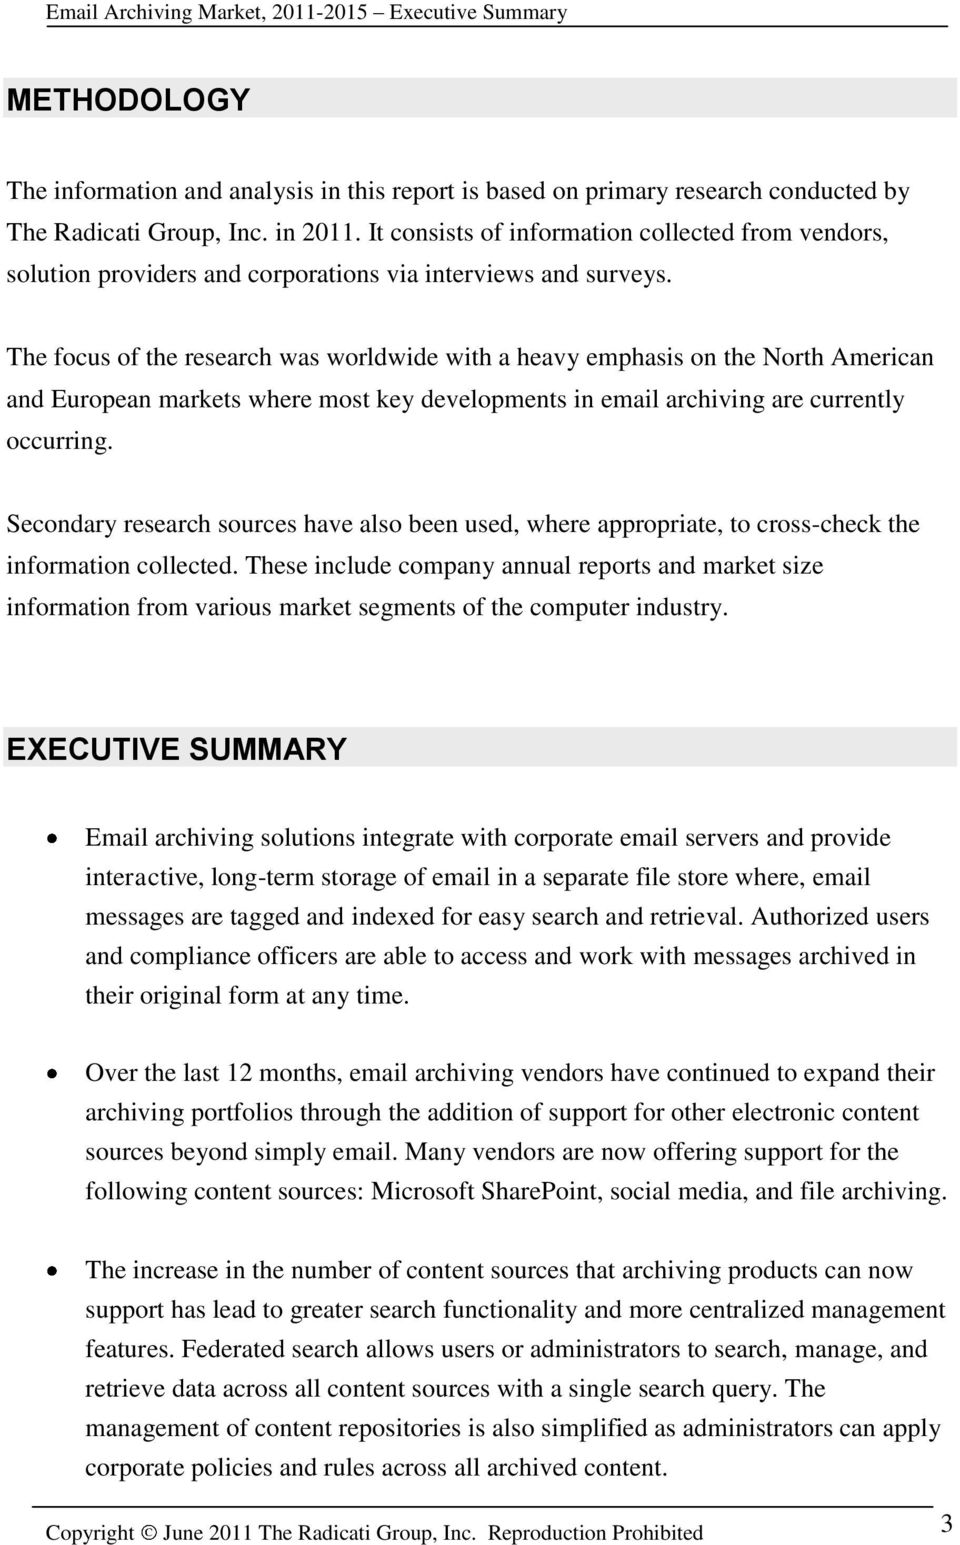 The focus of the research was worldwide with a heavy emphasis on the North American and European markets where most key developments in email archiving are currently occurring.